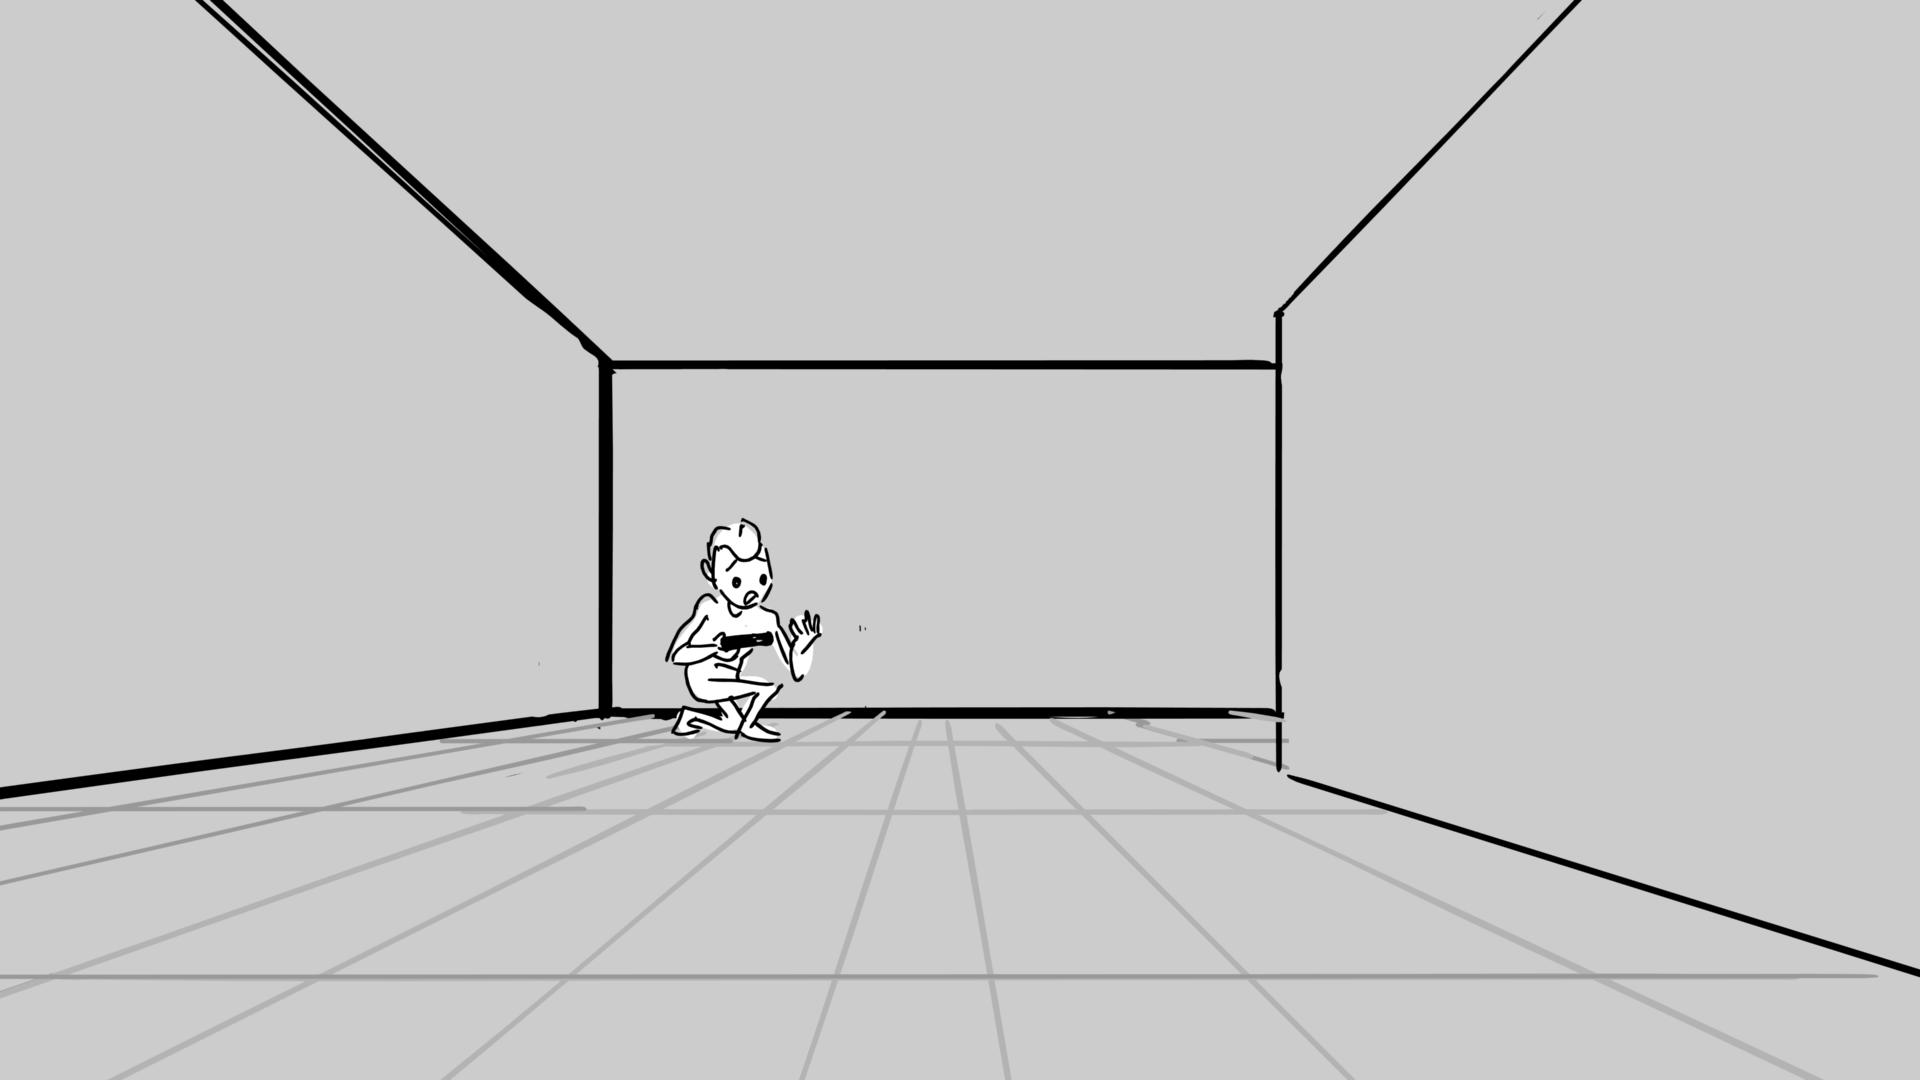 Stringari_Rachel_DudmanTS4_Animatic-062.jpg